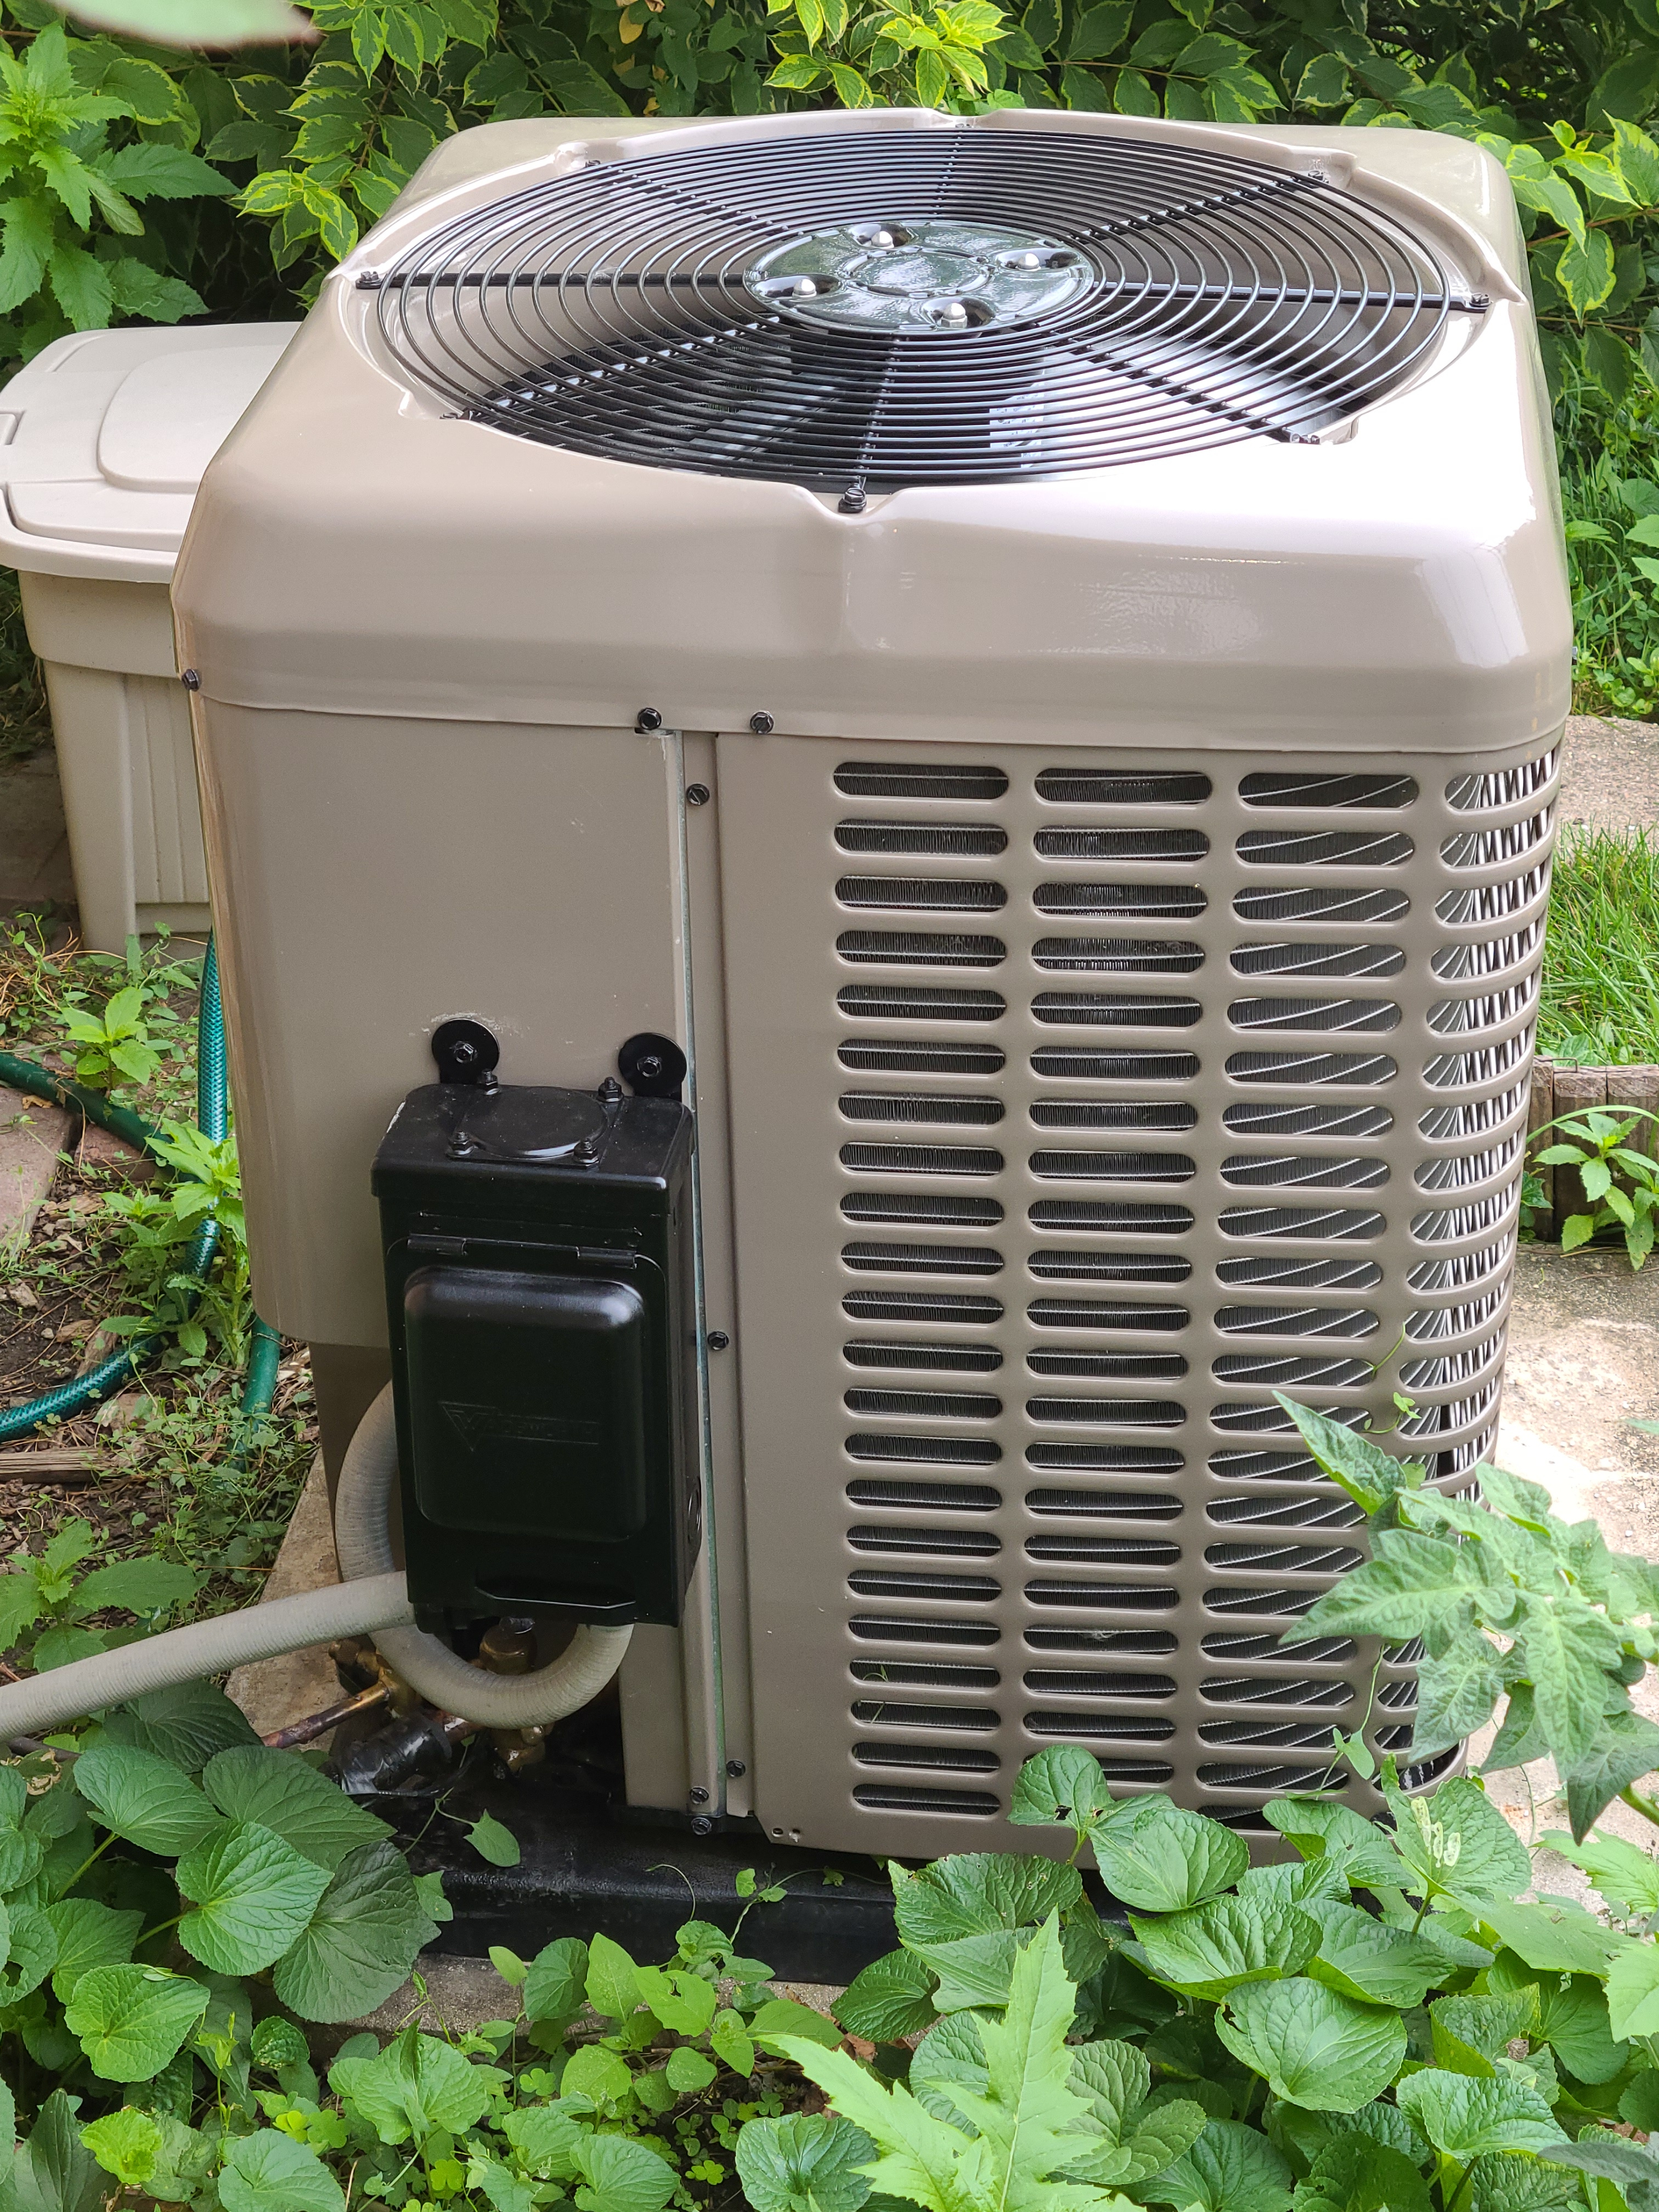 Installation of York condensing unit in Niles